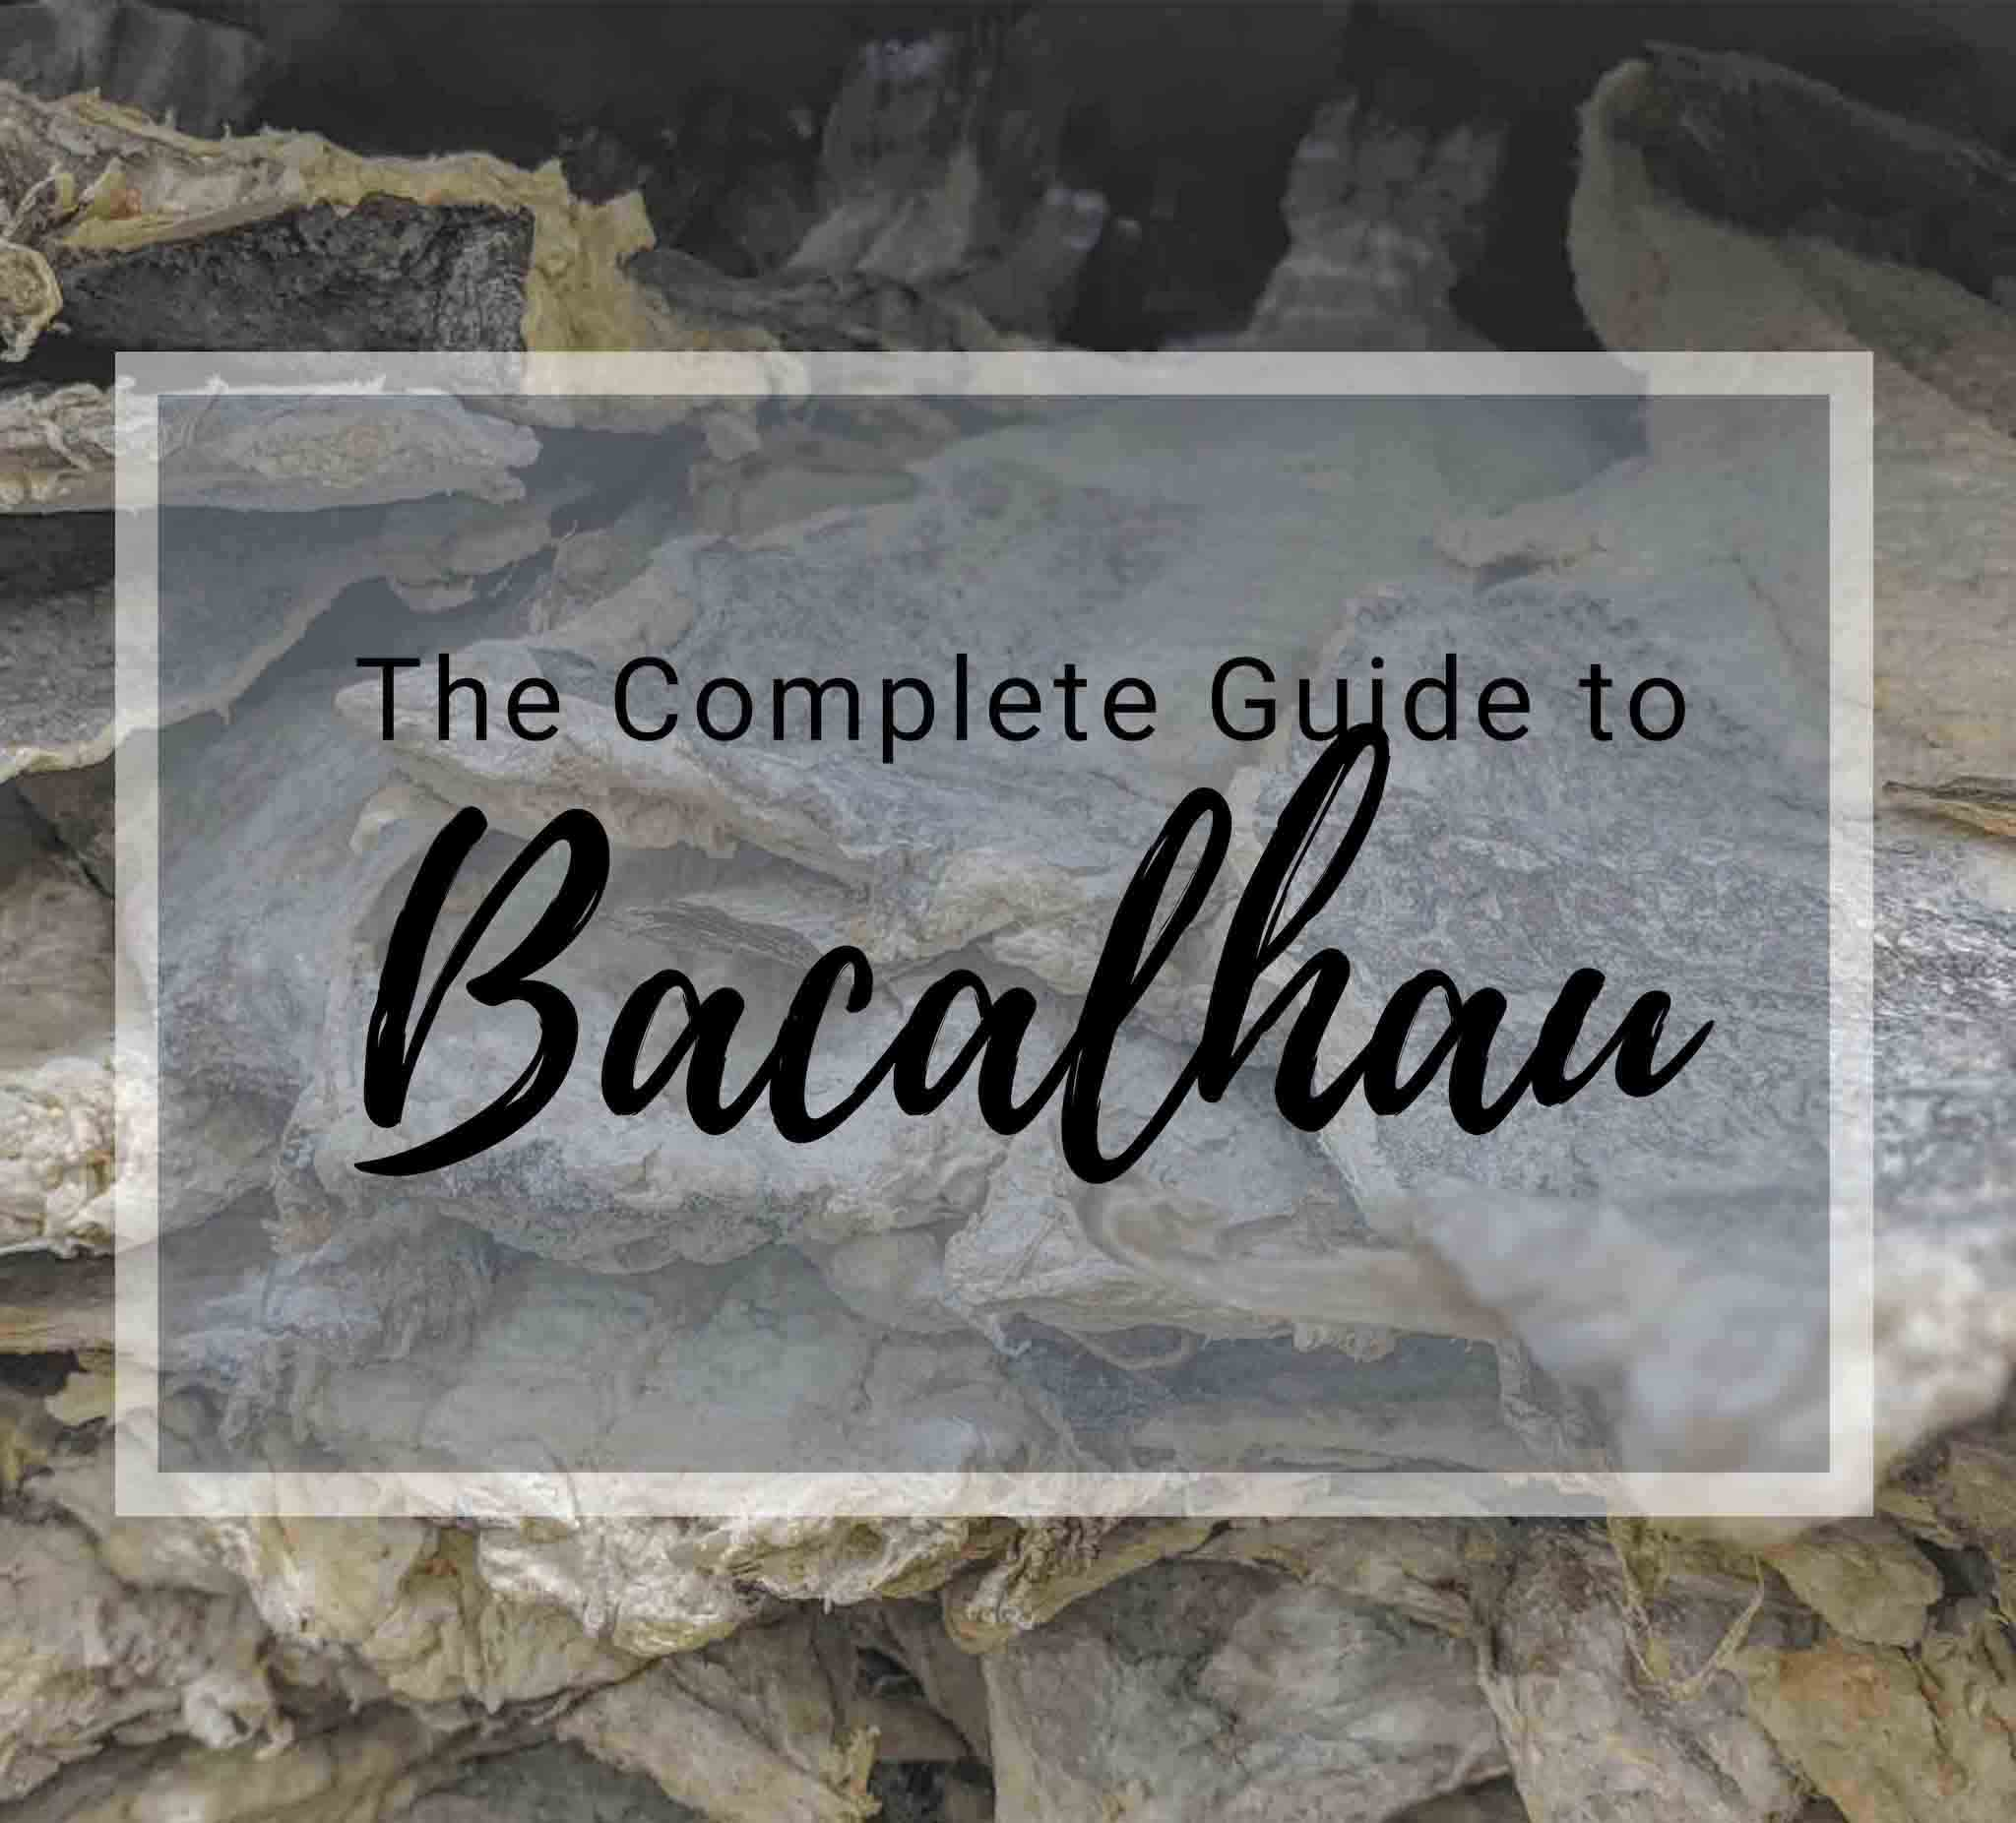 Bacalhau cover image